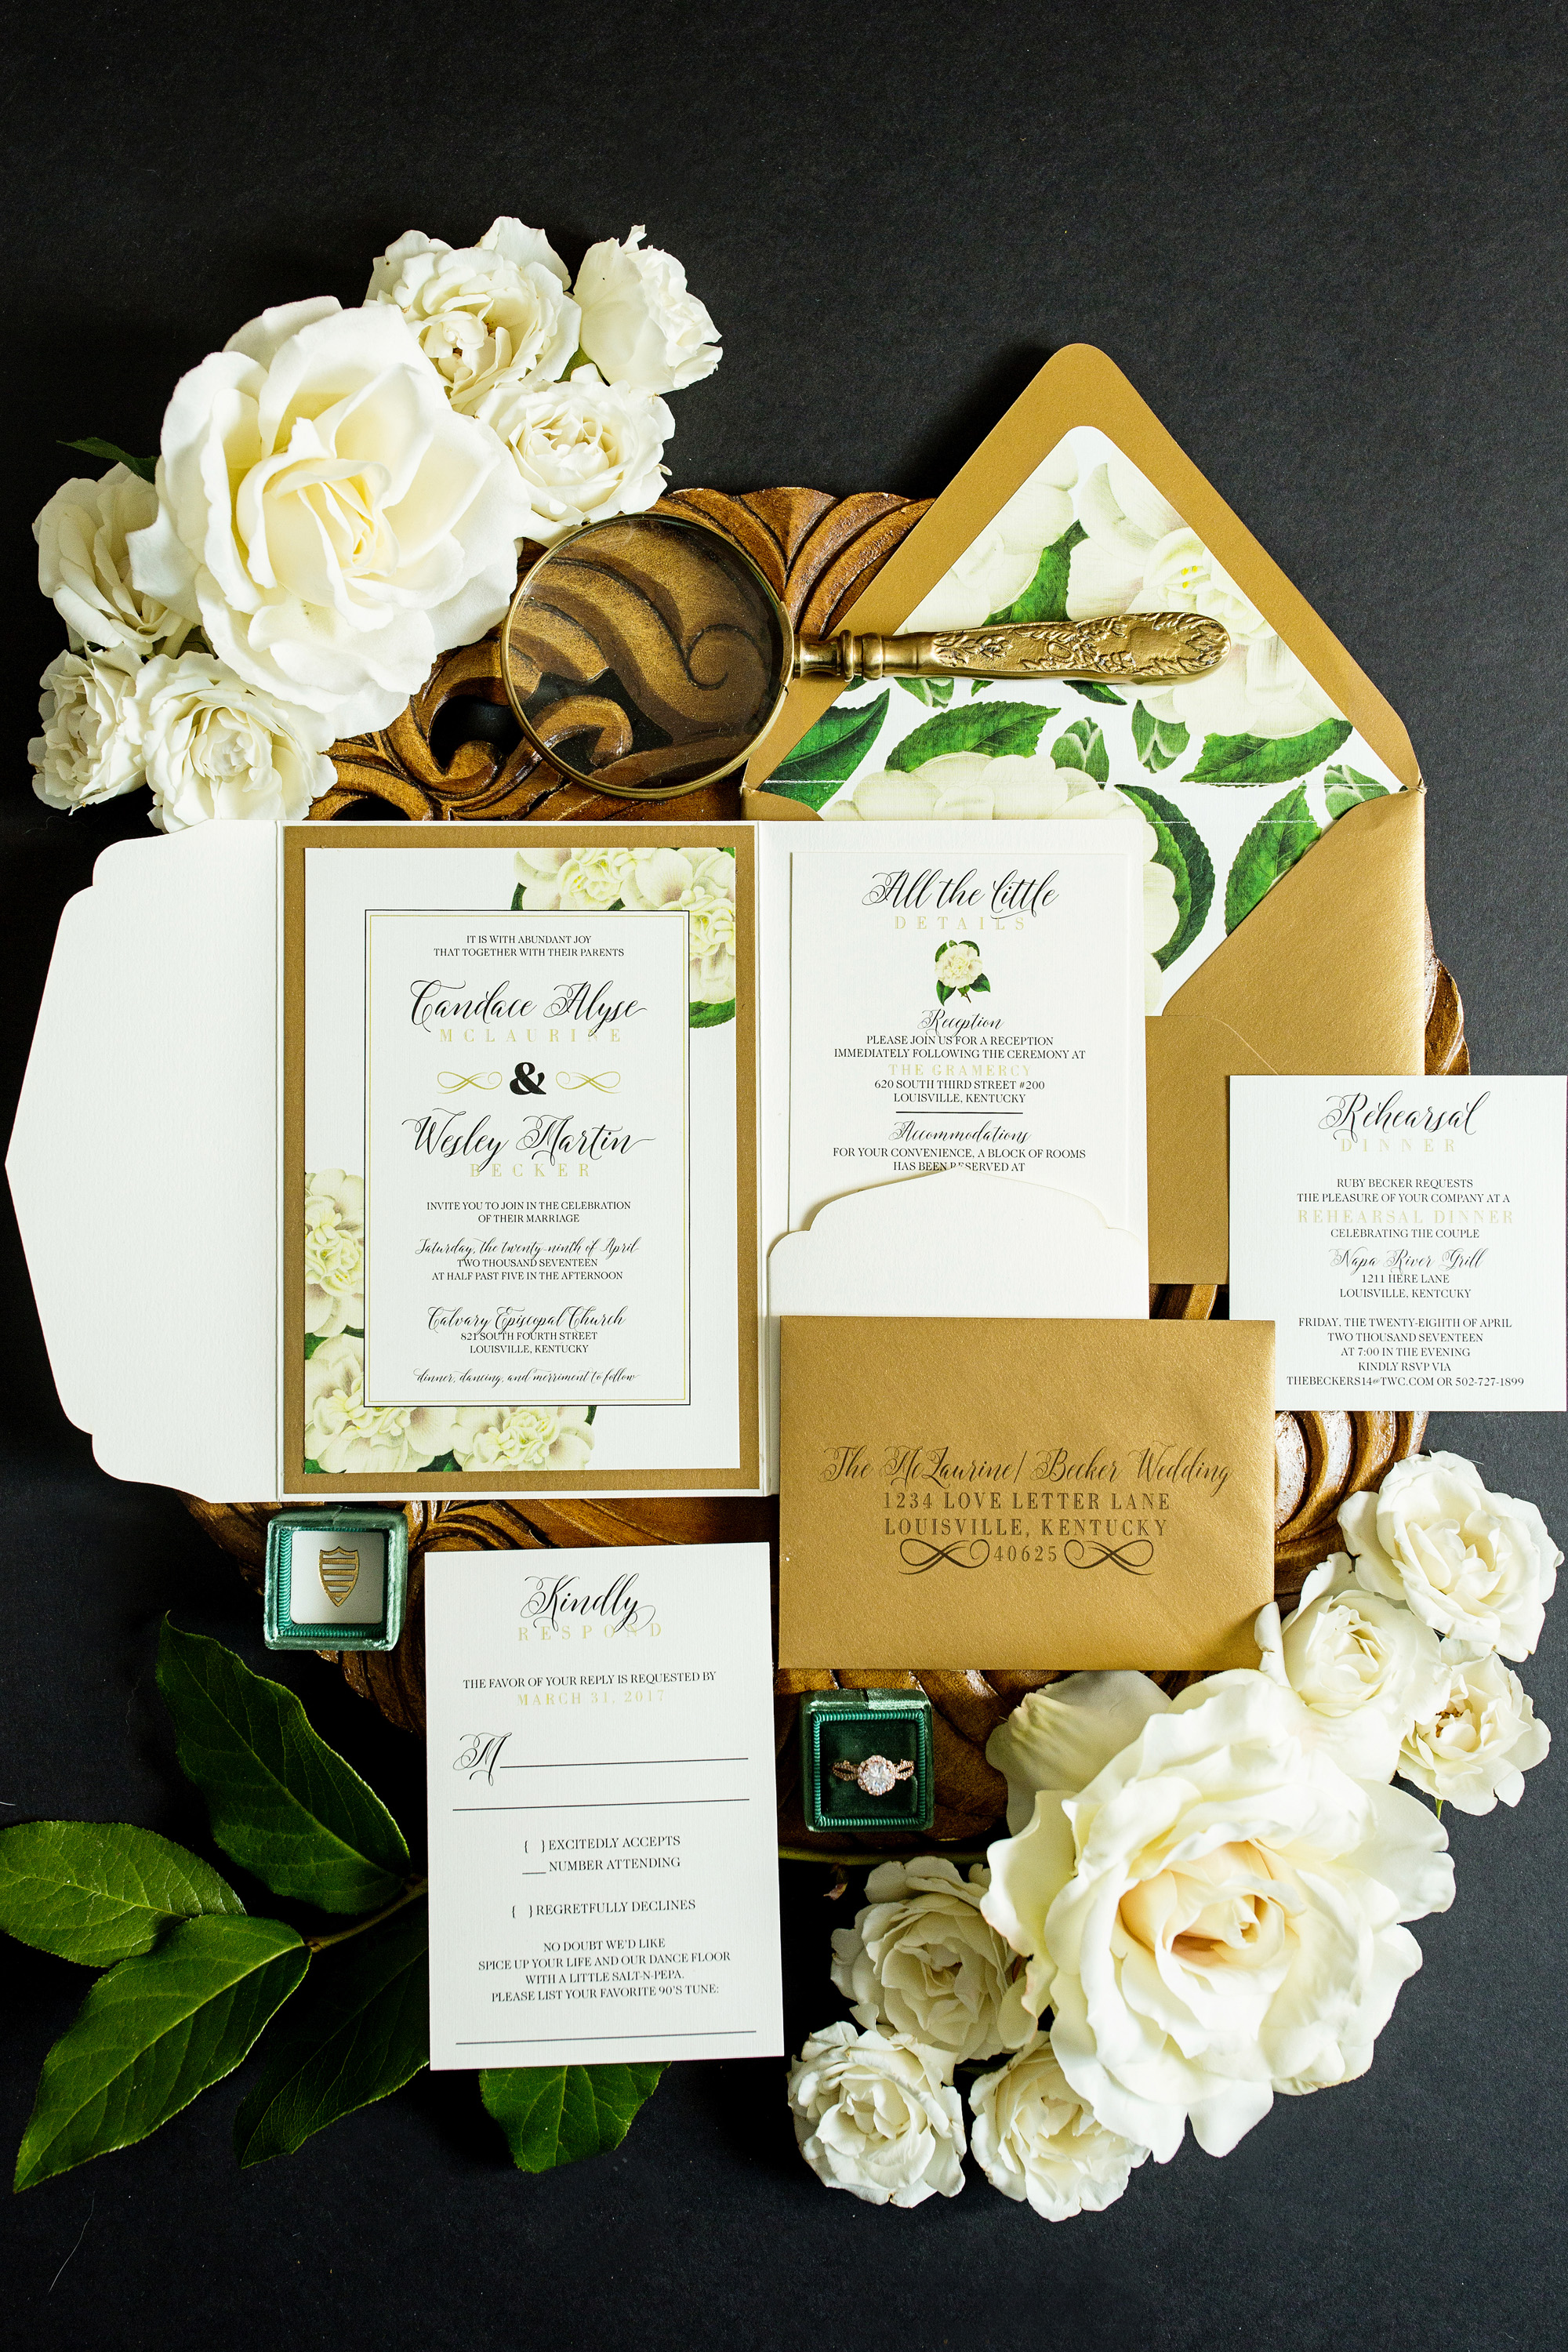 Seriously_Sabrina_Photography_Commercial_Simply_Done_Invites_2019_March_096